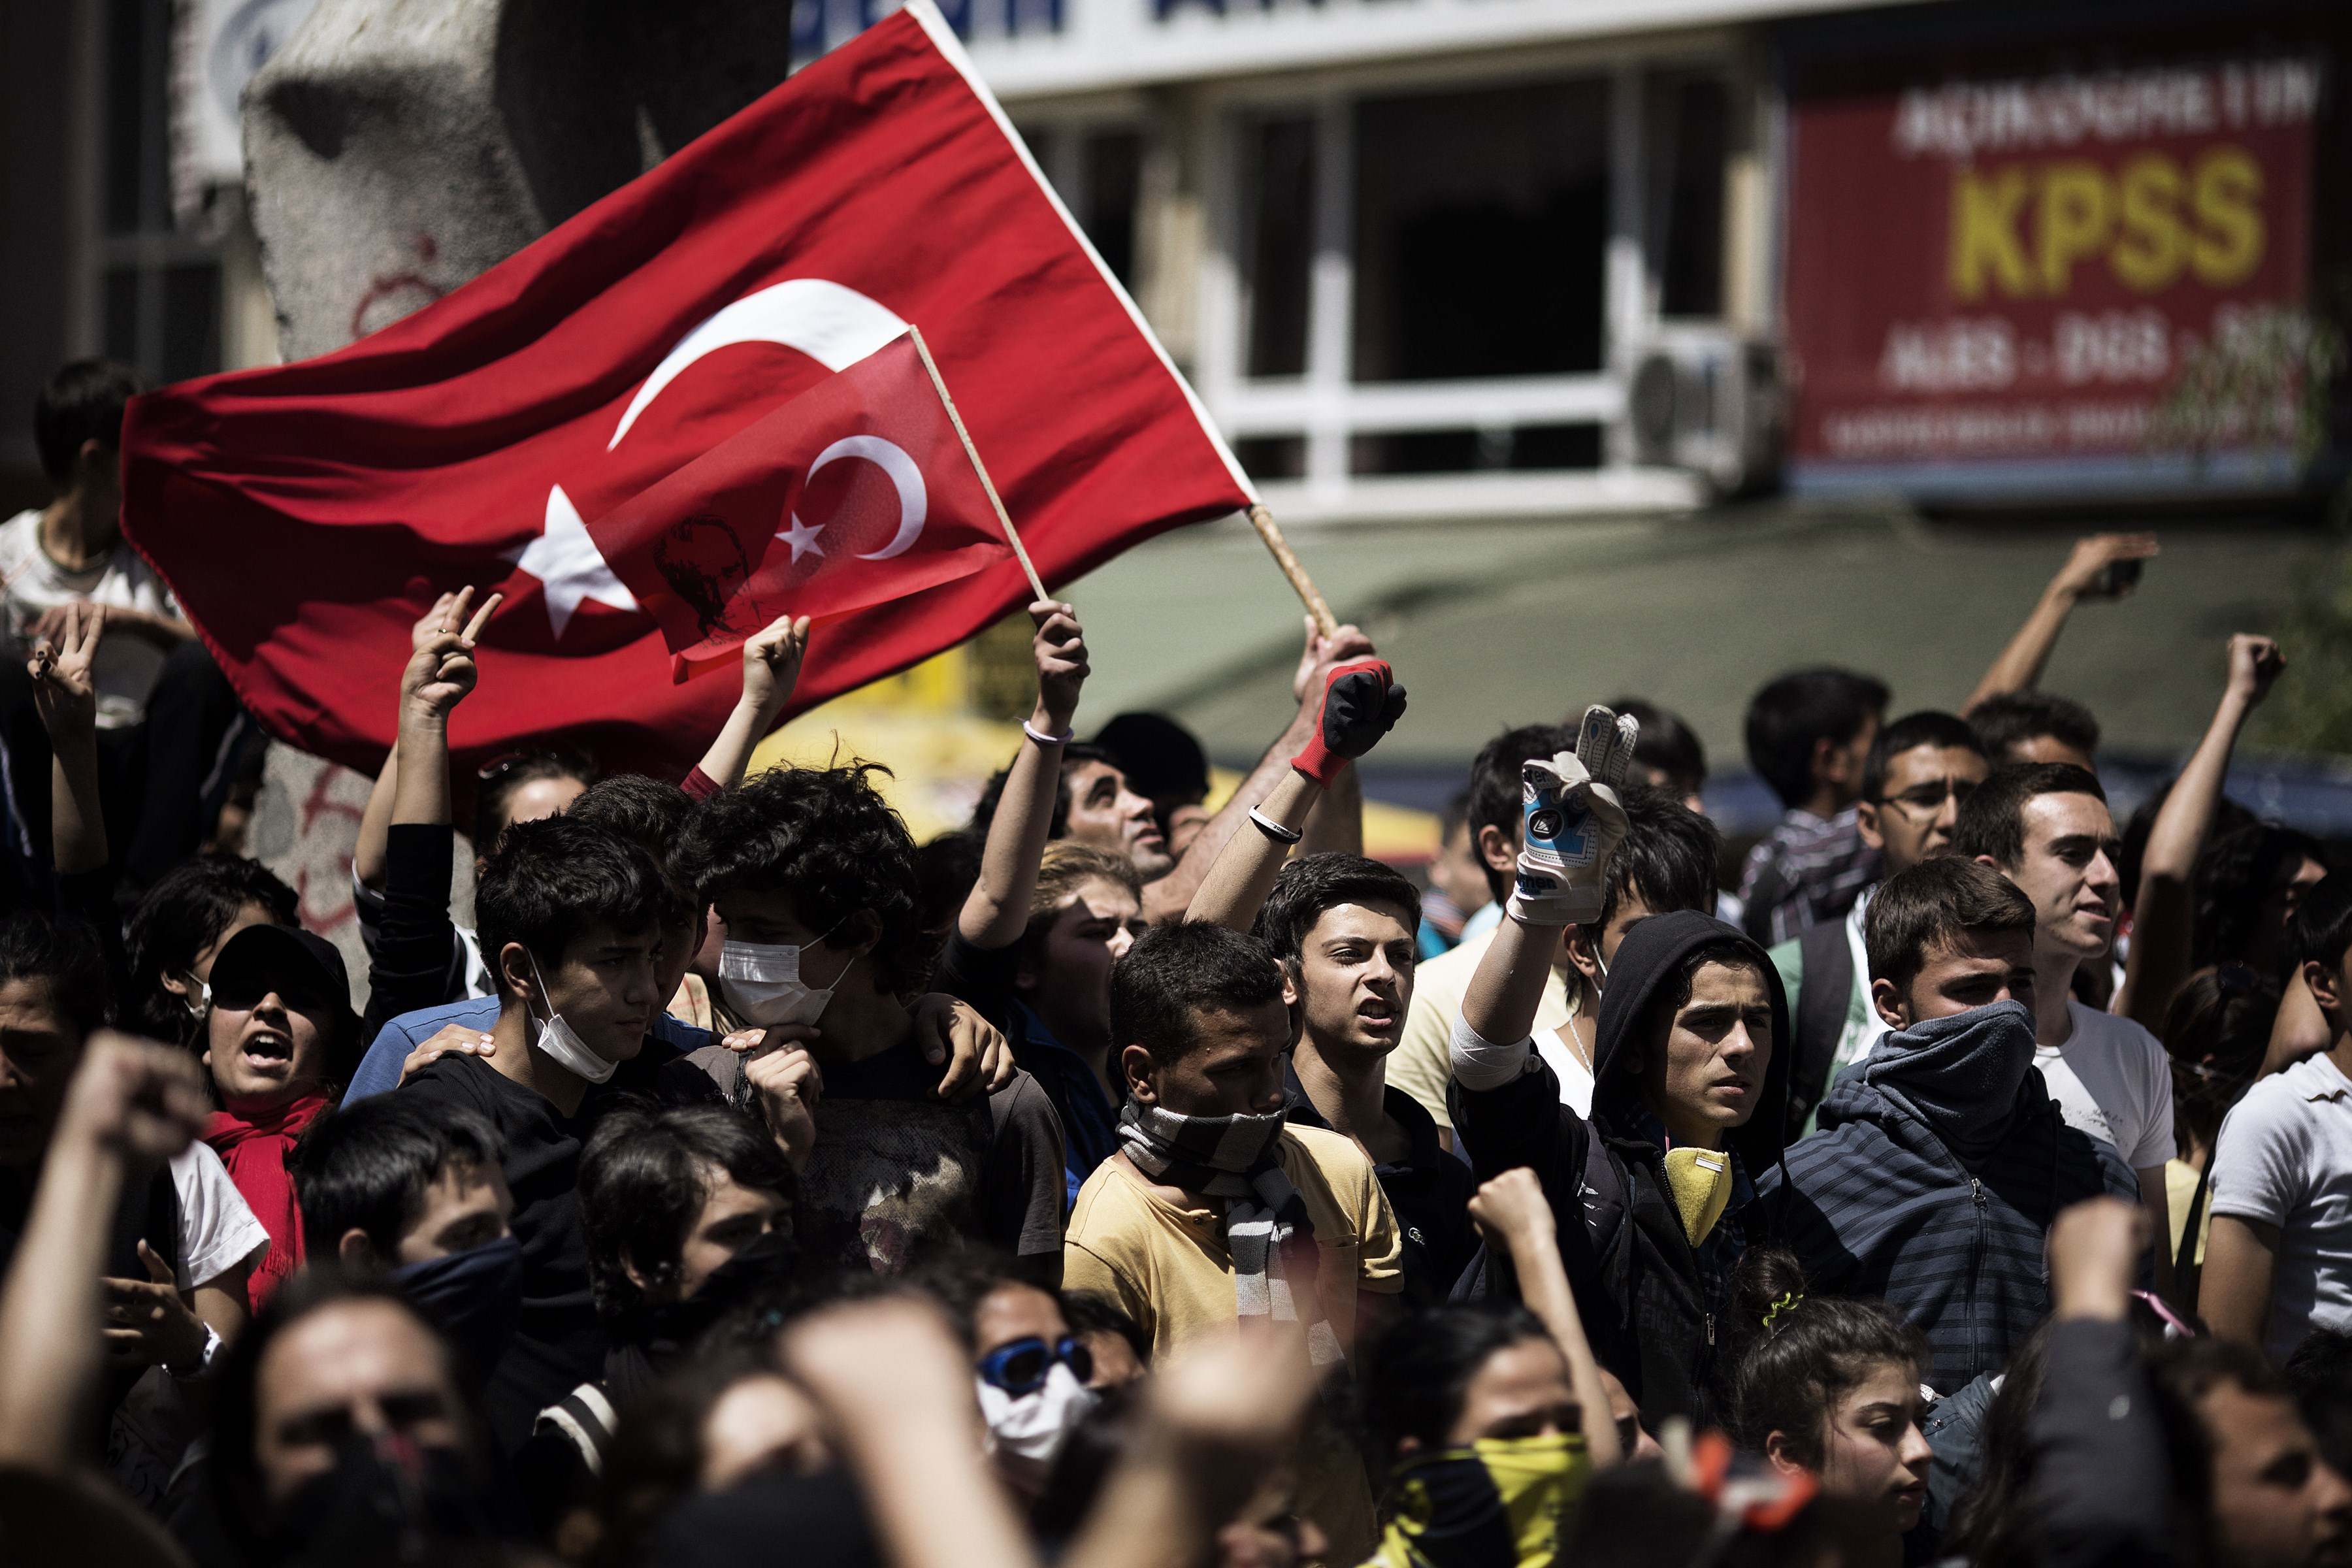 Turkish demonstrators hold their national flag on June 4, 2013 during a protest in front of the prime minister's office in Ankara. (AFP Photo)